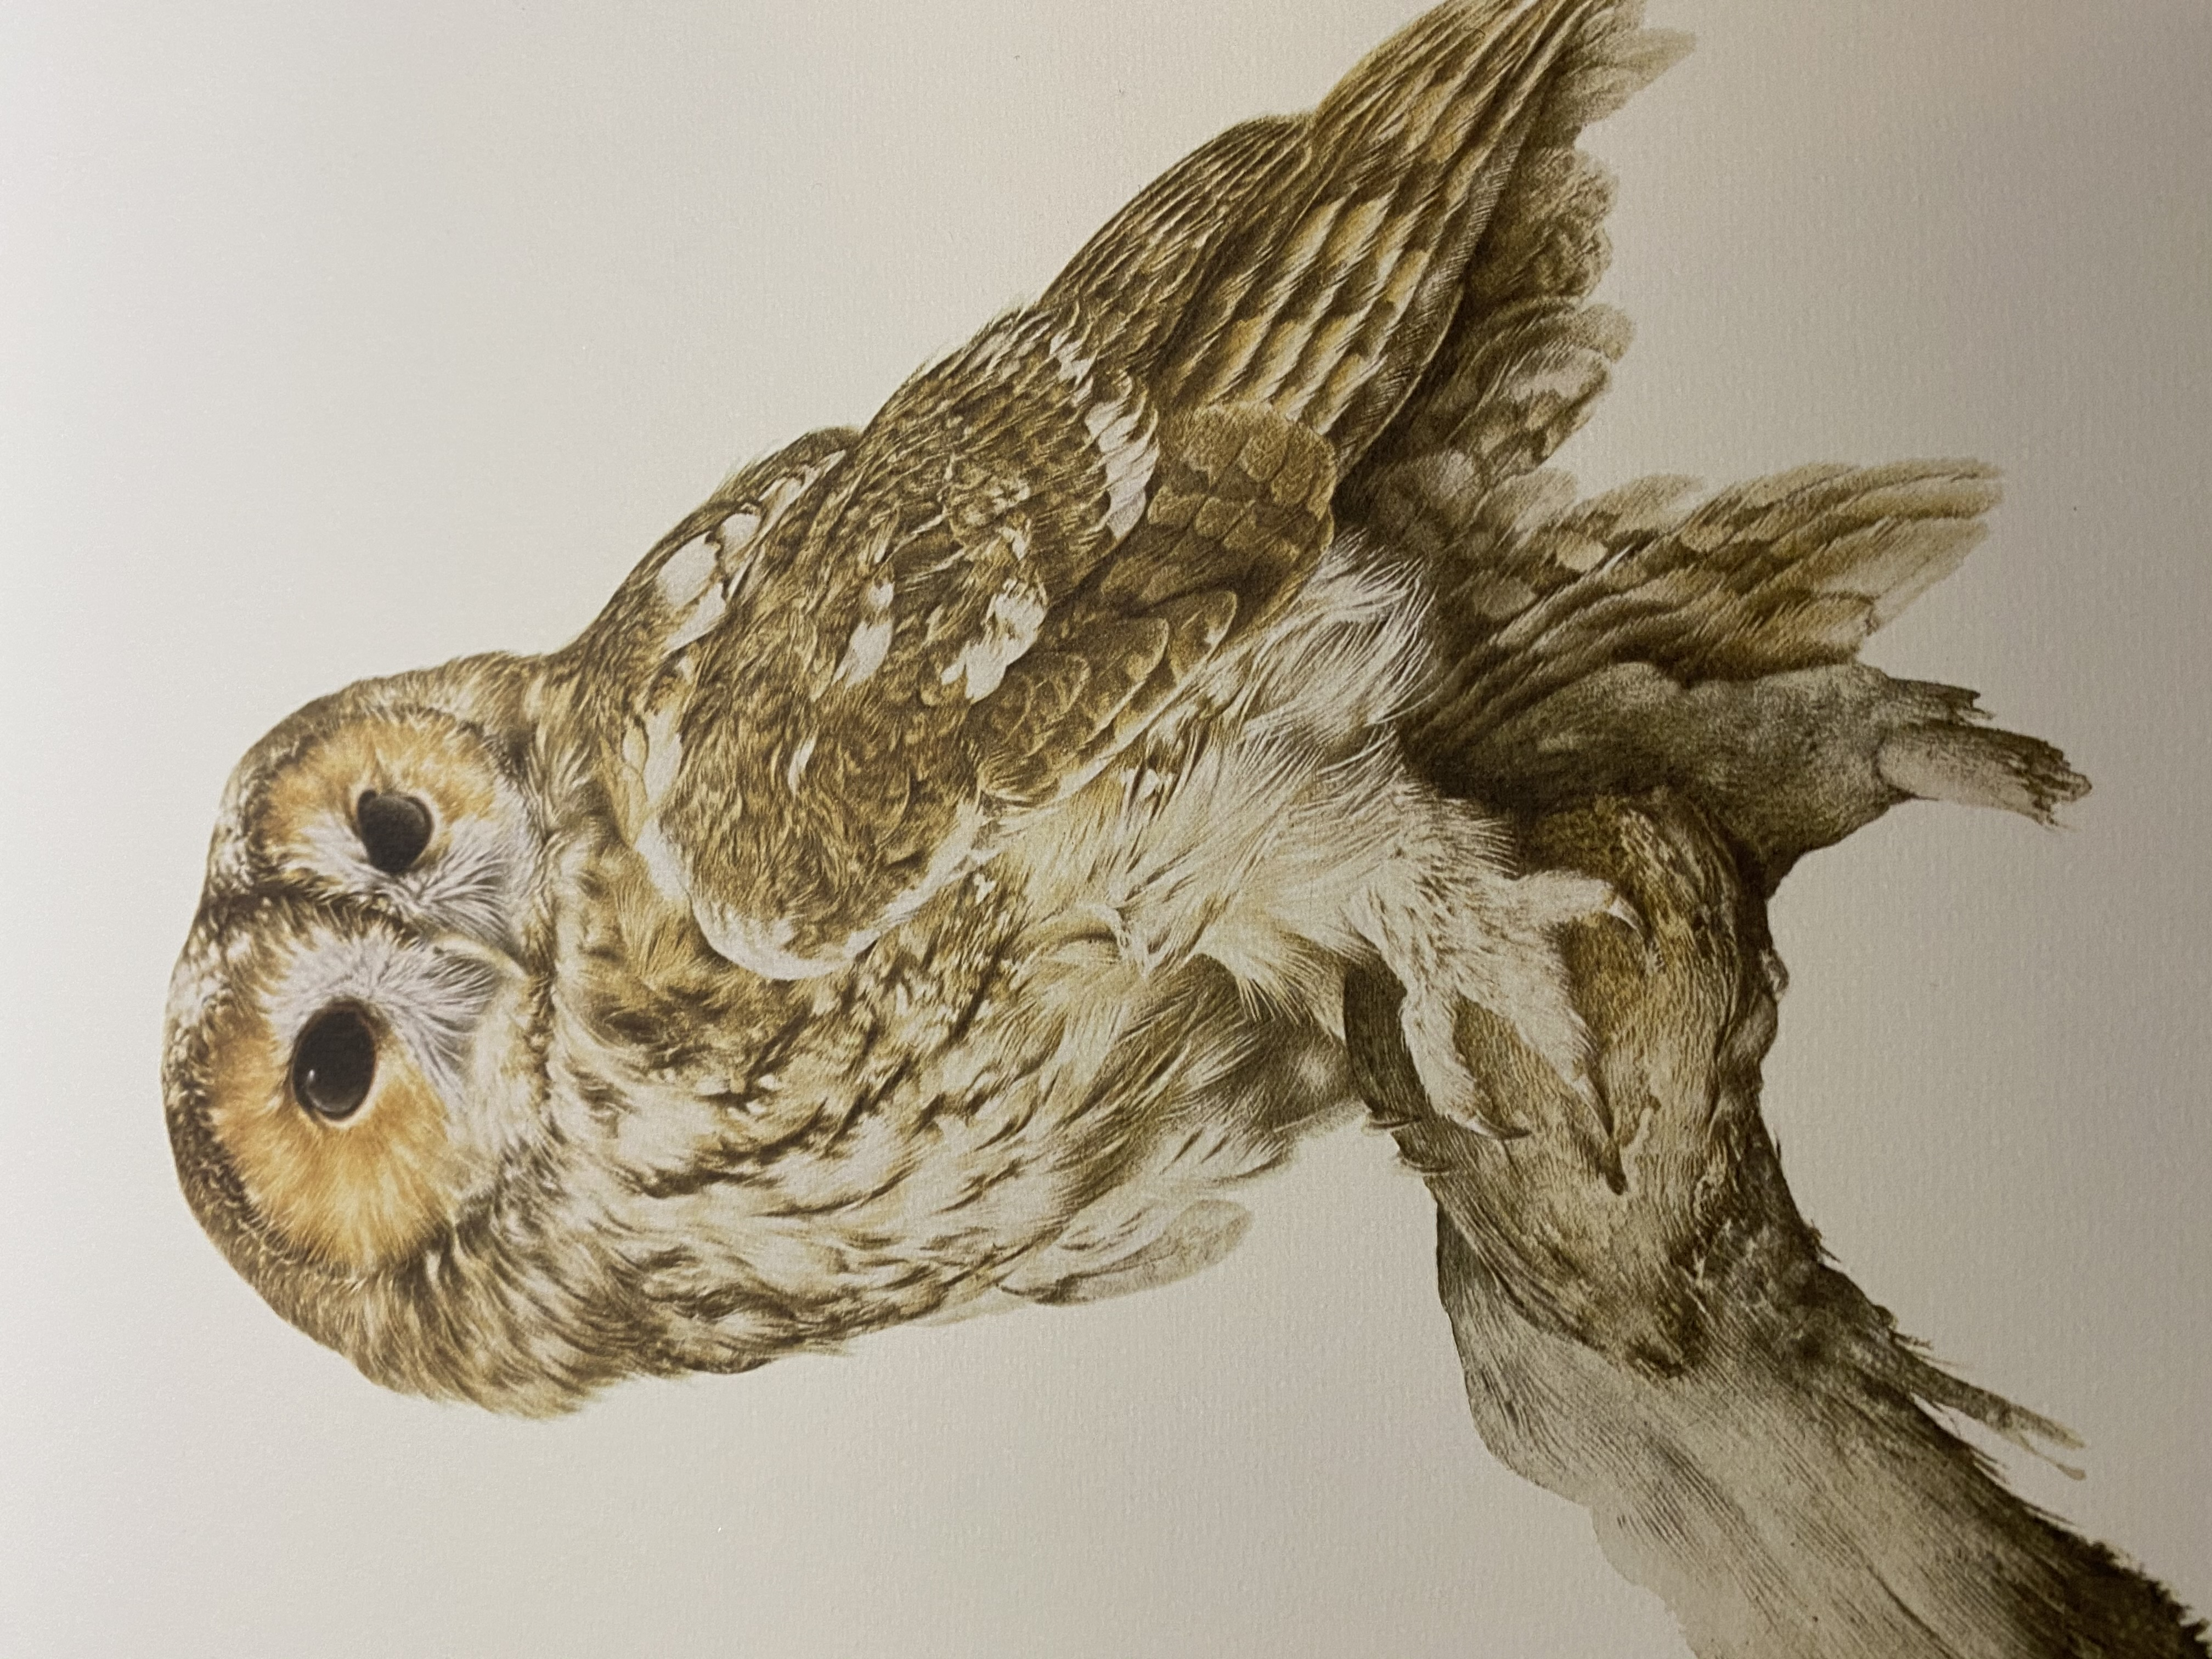 G Bryan Reed Large Rare Limited Edition print 'Tawny Owl Strix Aluco' - Image 9 of 11